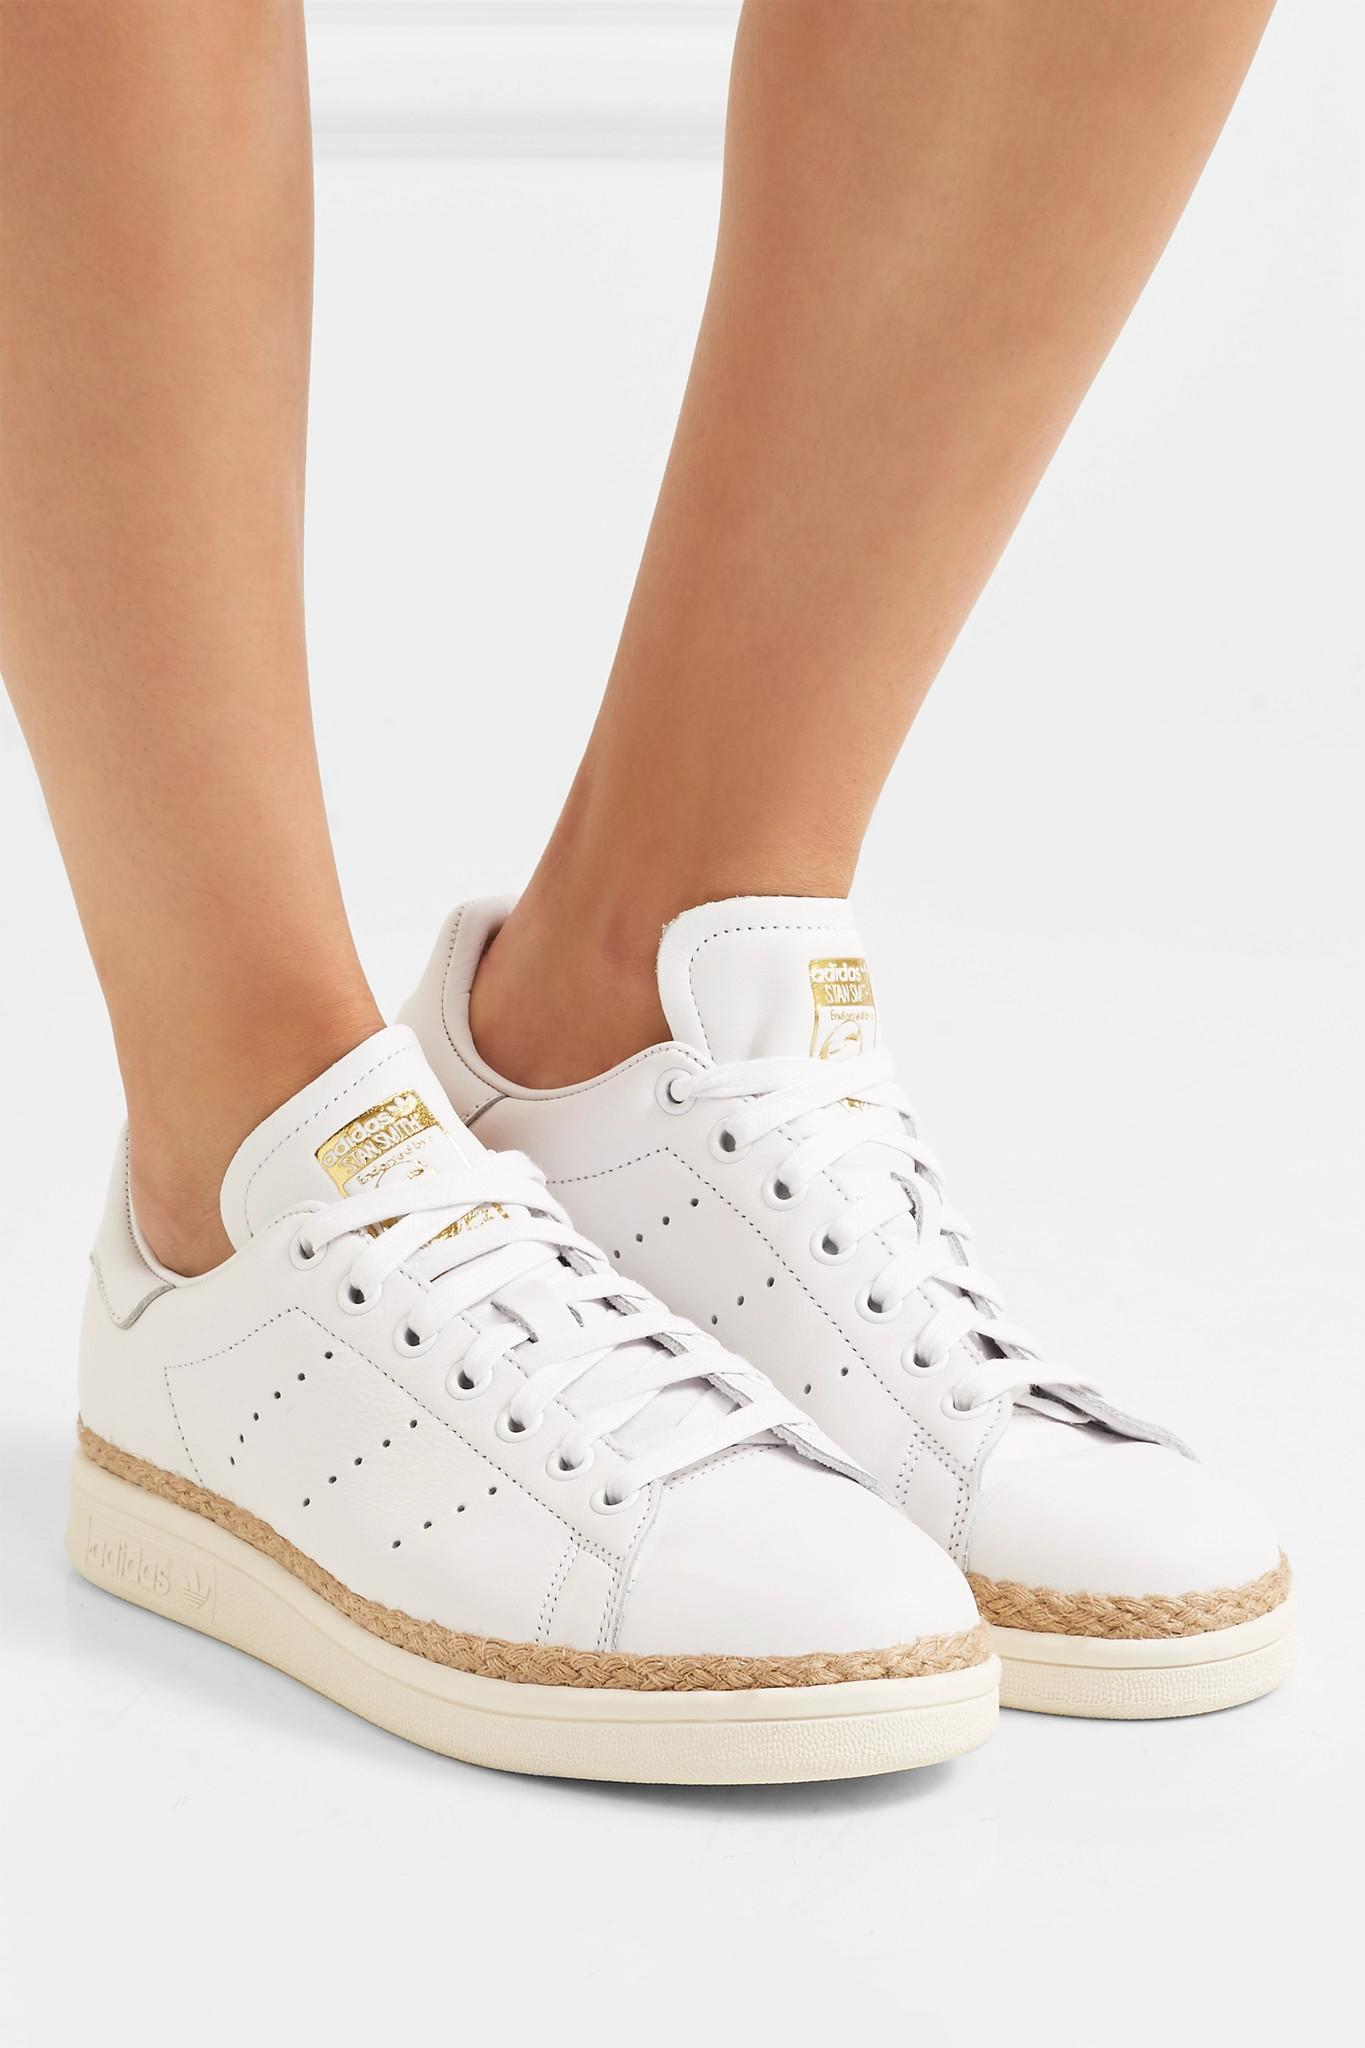 2203694e597 Adidas Originals - White Stan Smith Bold Rope-trimmed Leather Sneakers -  Lyst. View fullscreen